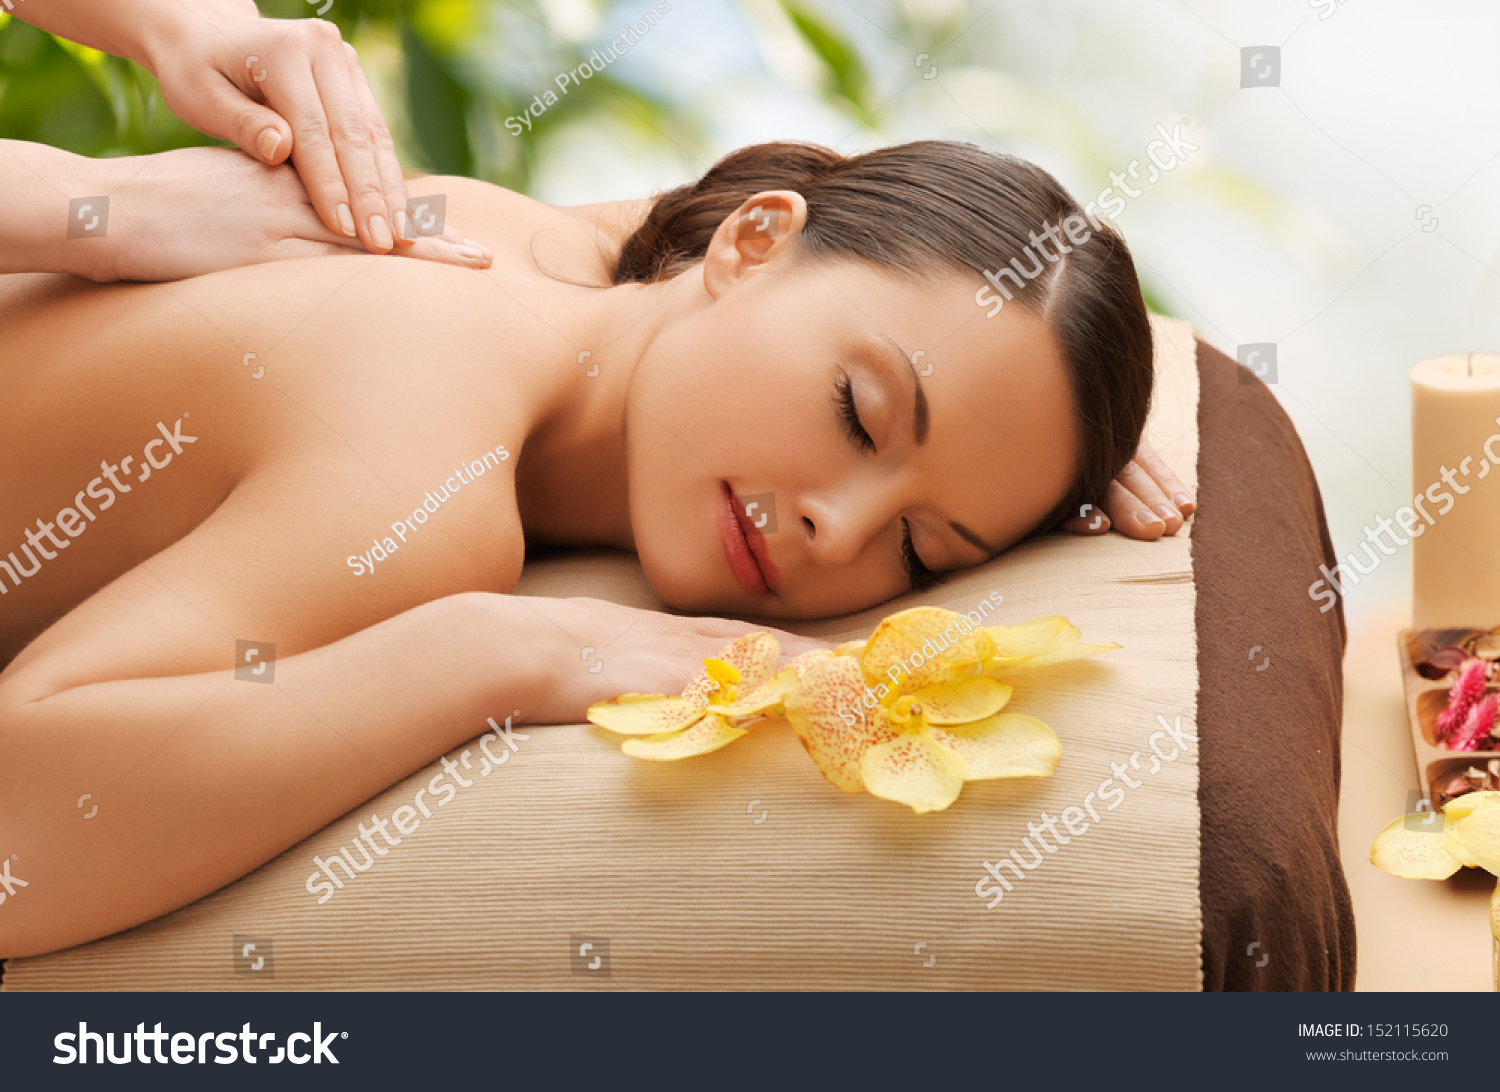 beauty holidays and spa concept woman in spa salon getting massage photo libre de droits. Black Bedroom Furniture Sets. Home Design Ideas